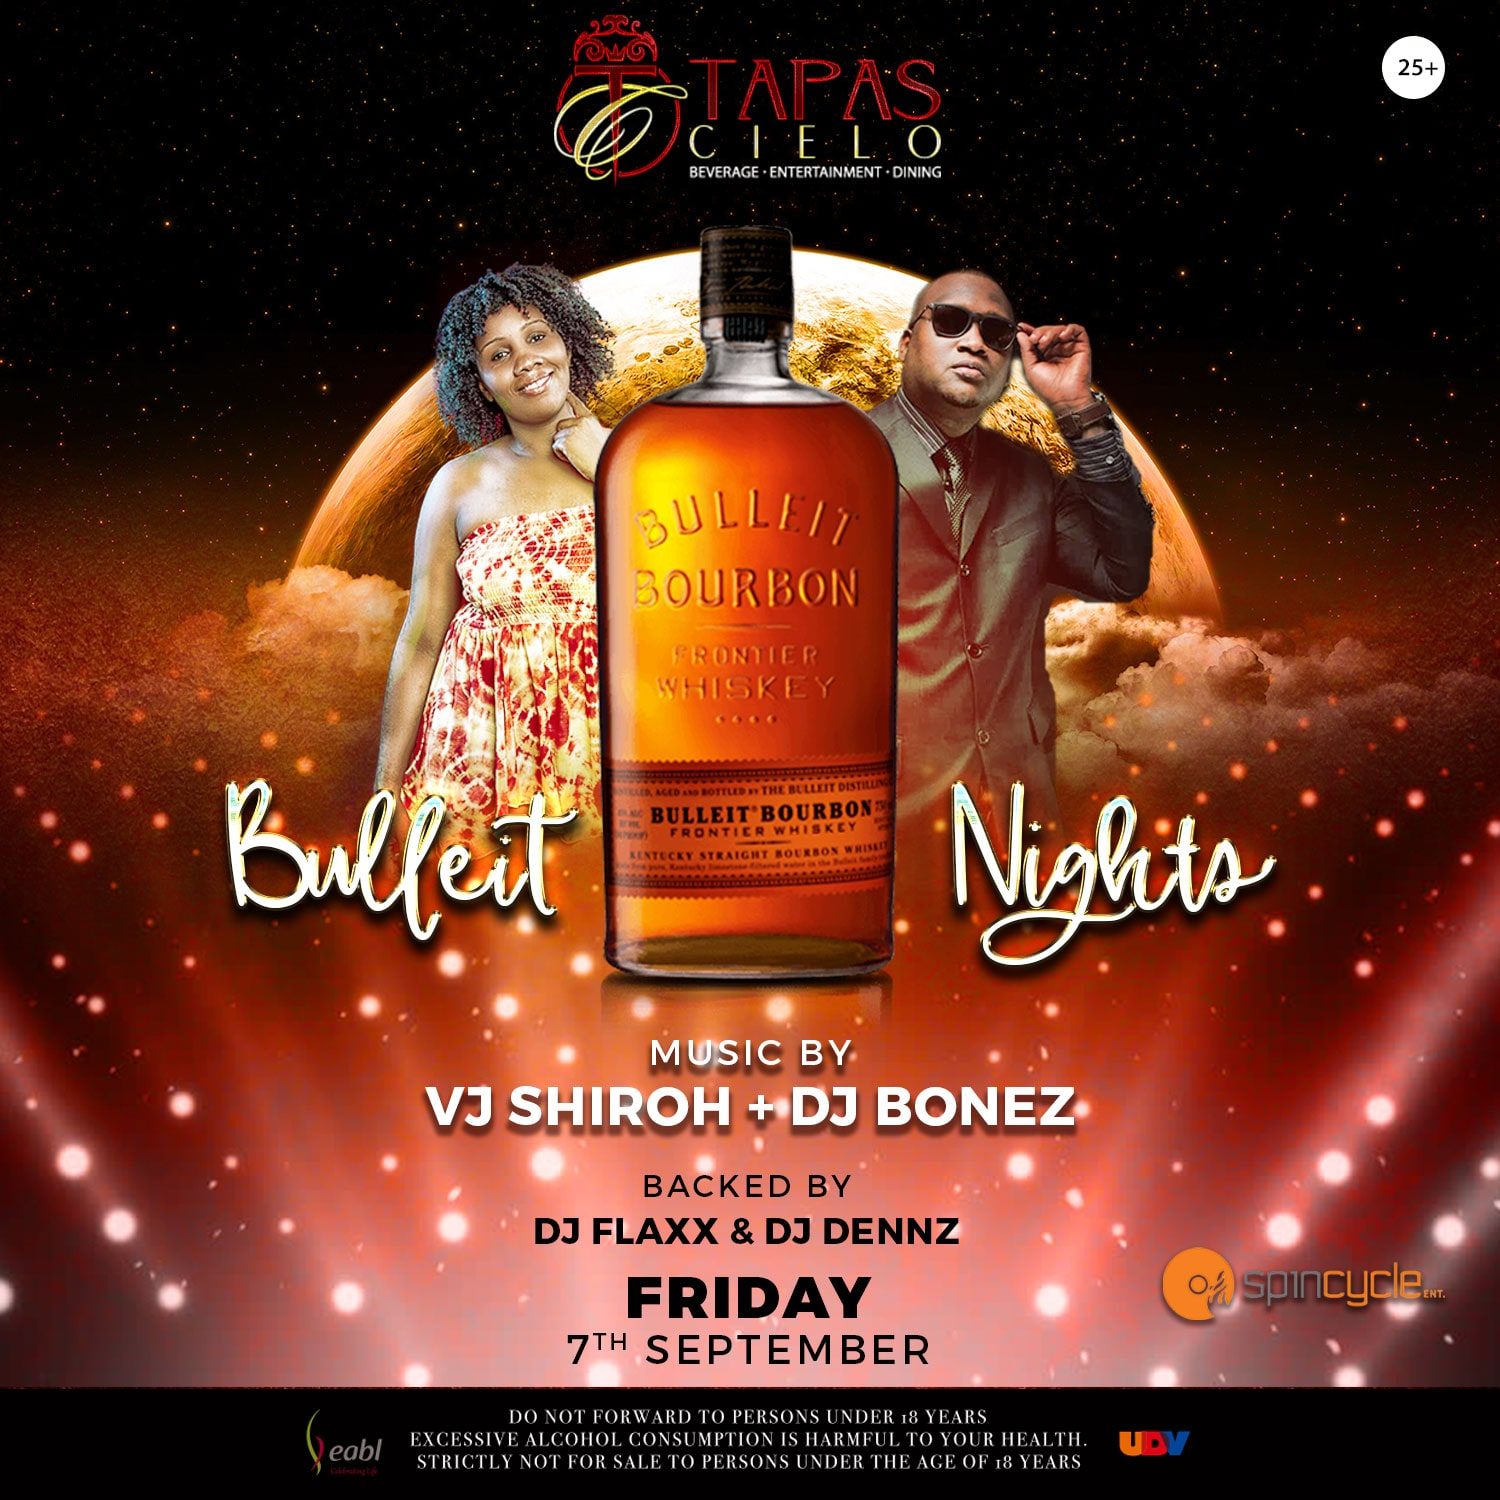 bulleit-nights-7th-sept-min